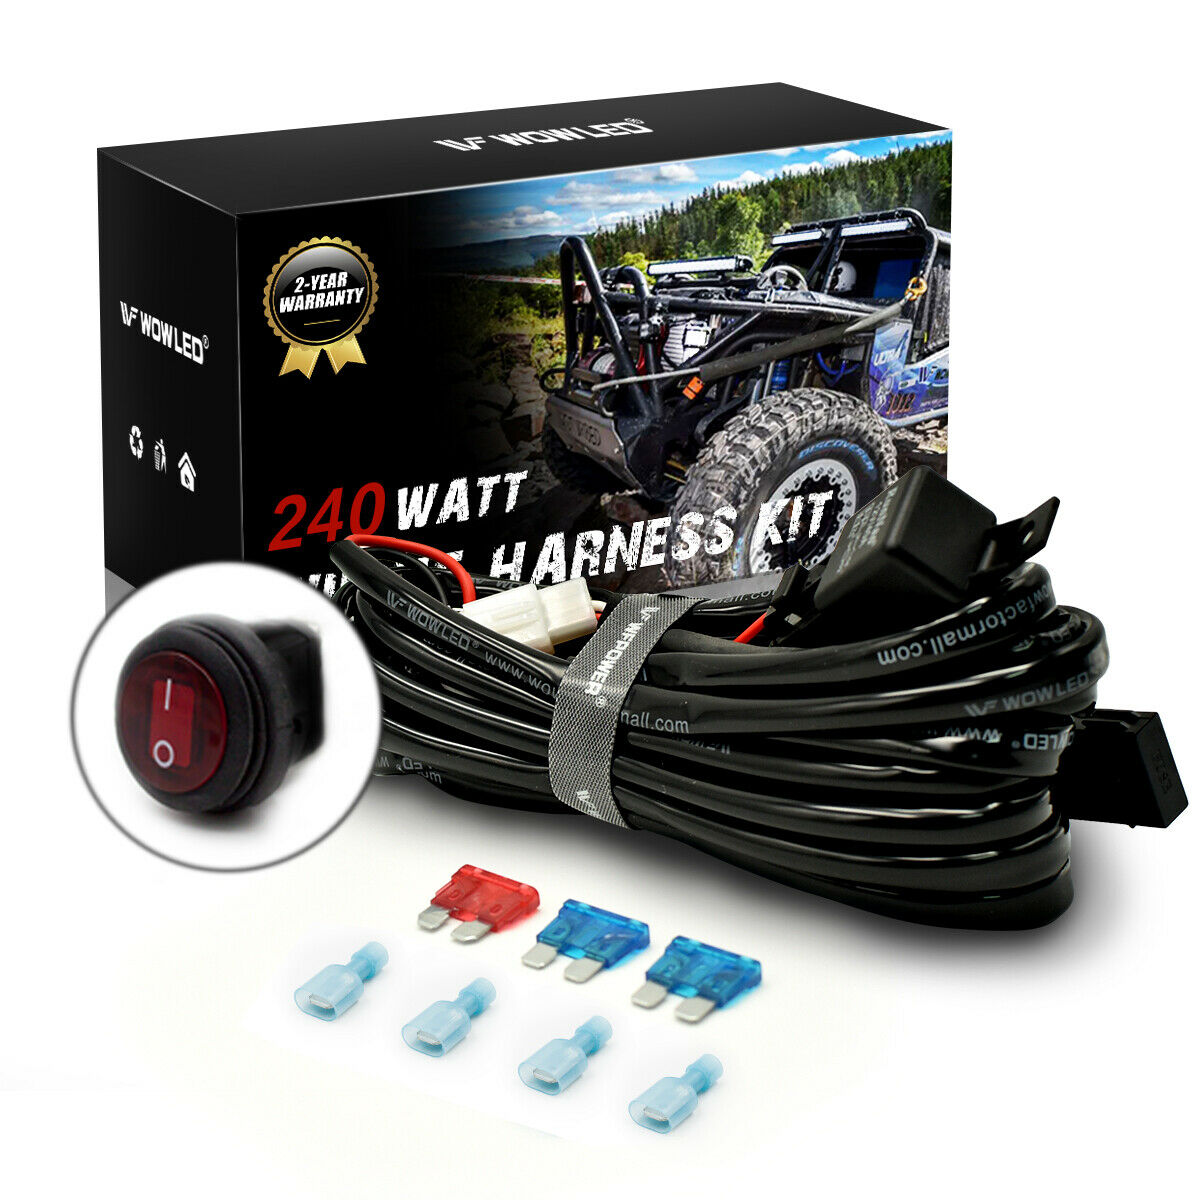 Wow Led Light Bar Wiring Harness Loom Relay Kit With 4pin Rocker Off Road Kits 1 Of 5free Shipping